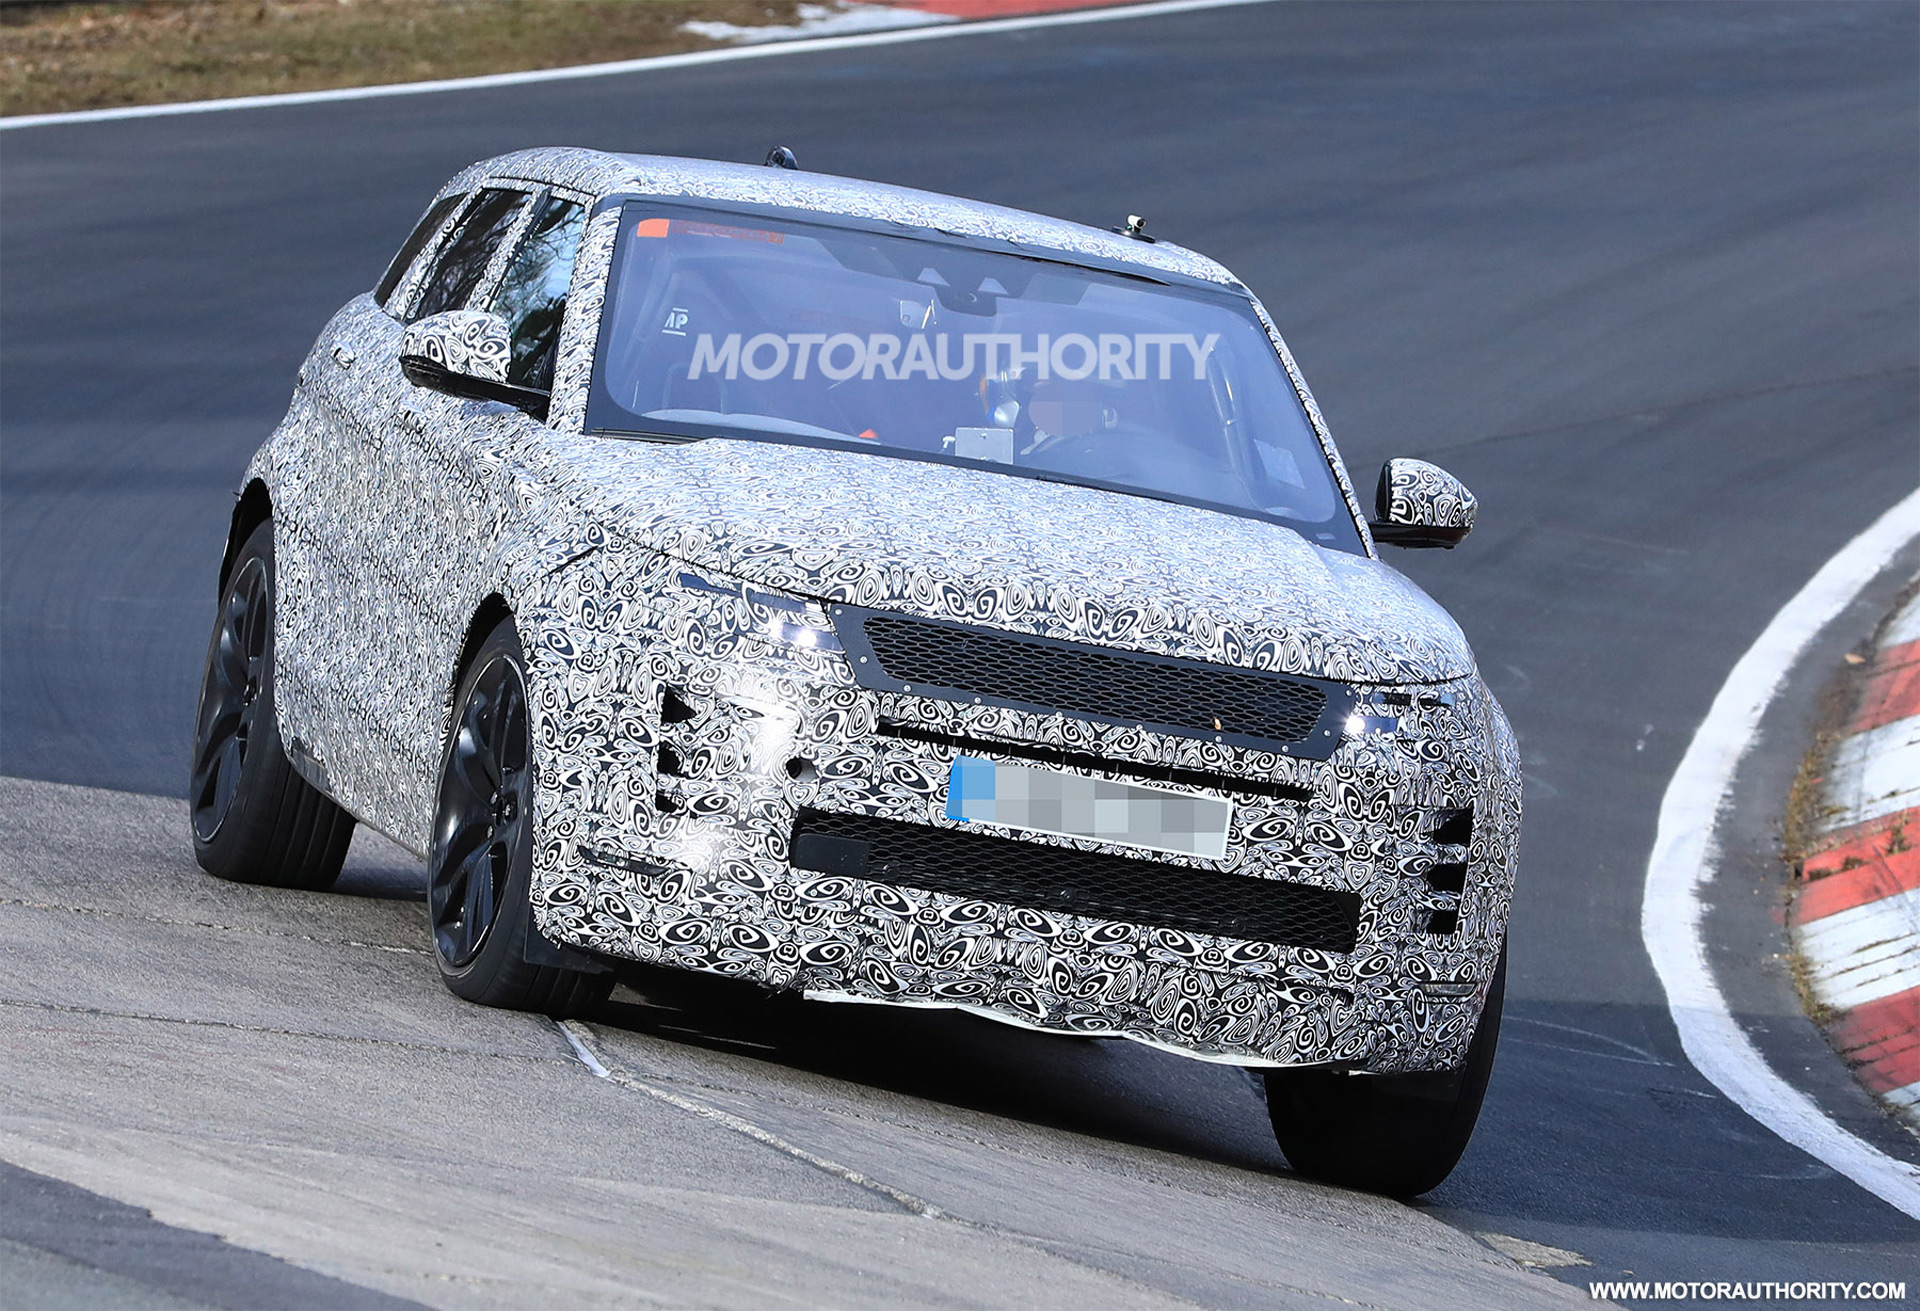 Landrover Range 2020 Land Rover Range Rover Evoque Spy Shots And Video